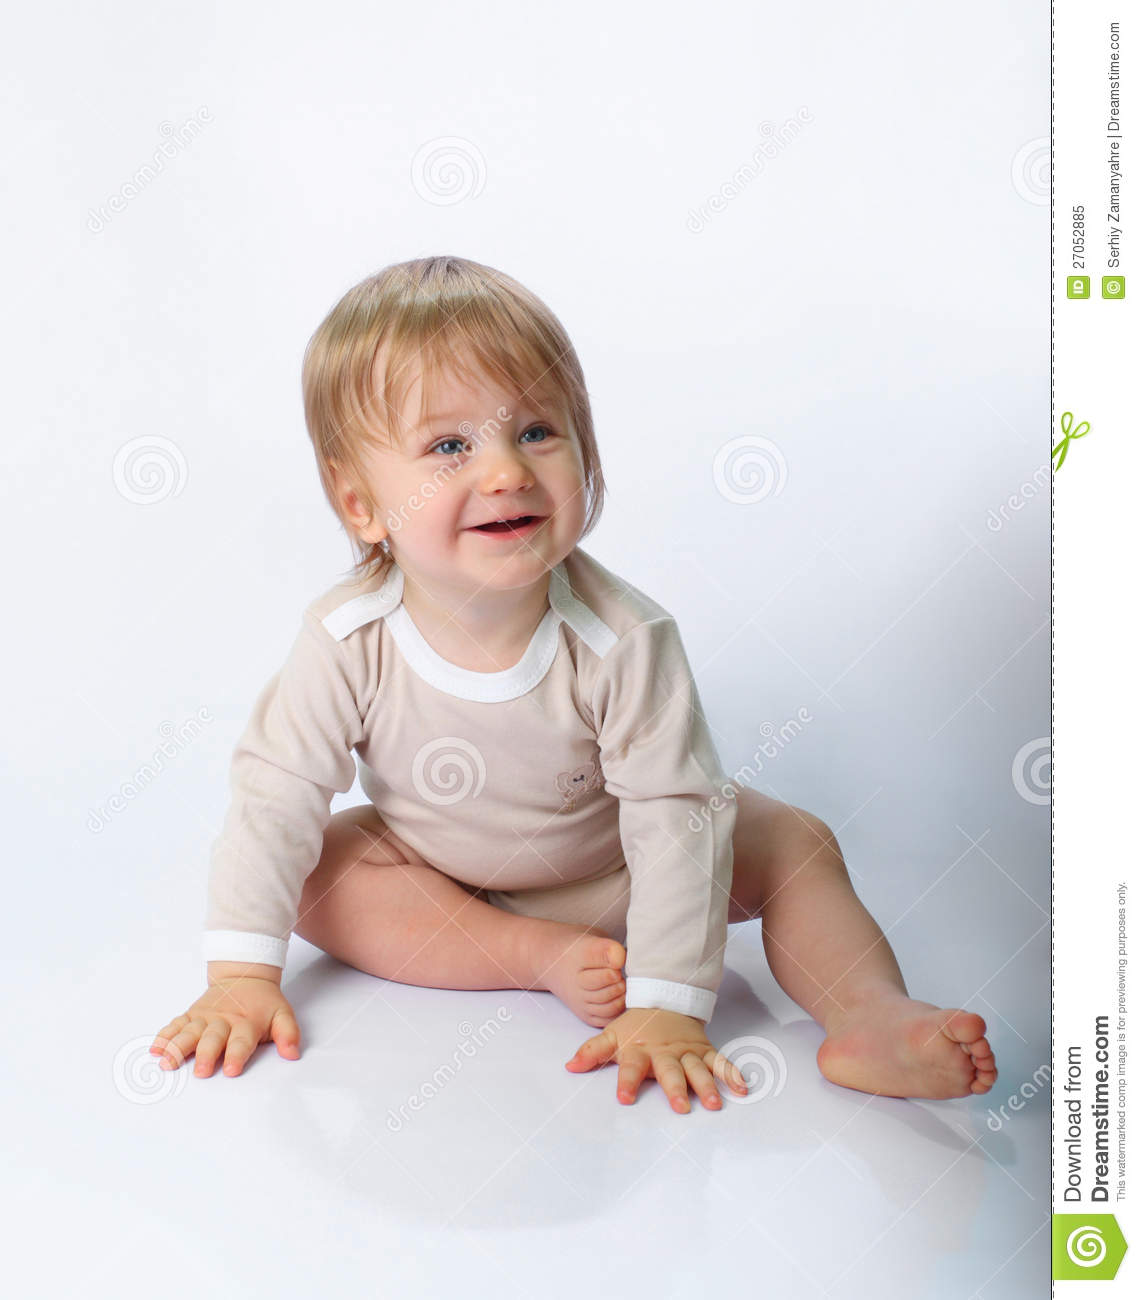 9efbd6388 Little Child Sitting On The Floor Stock Image - Image of cheerful ...